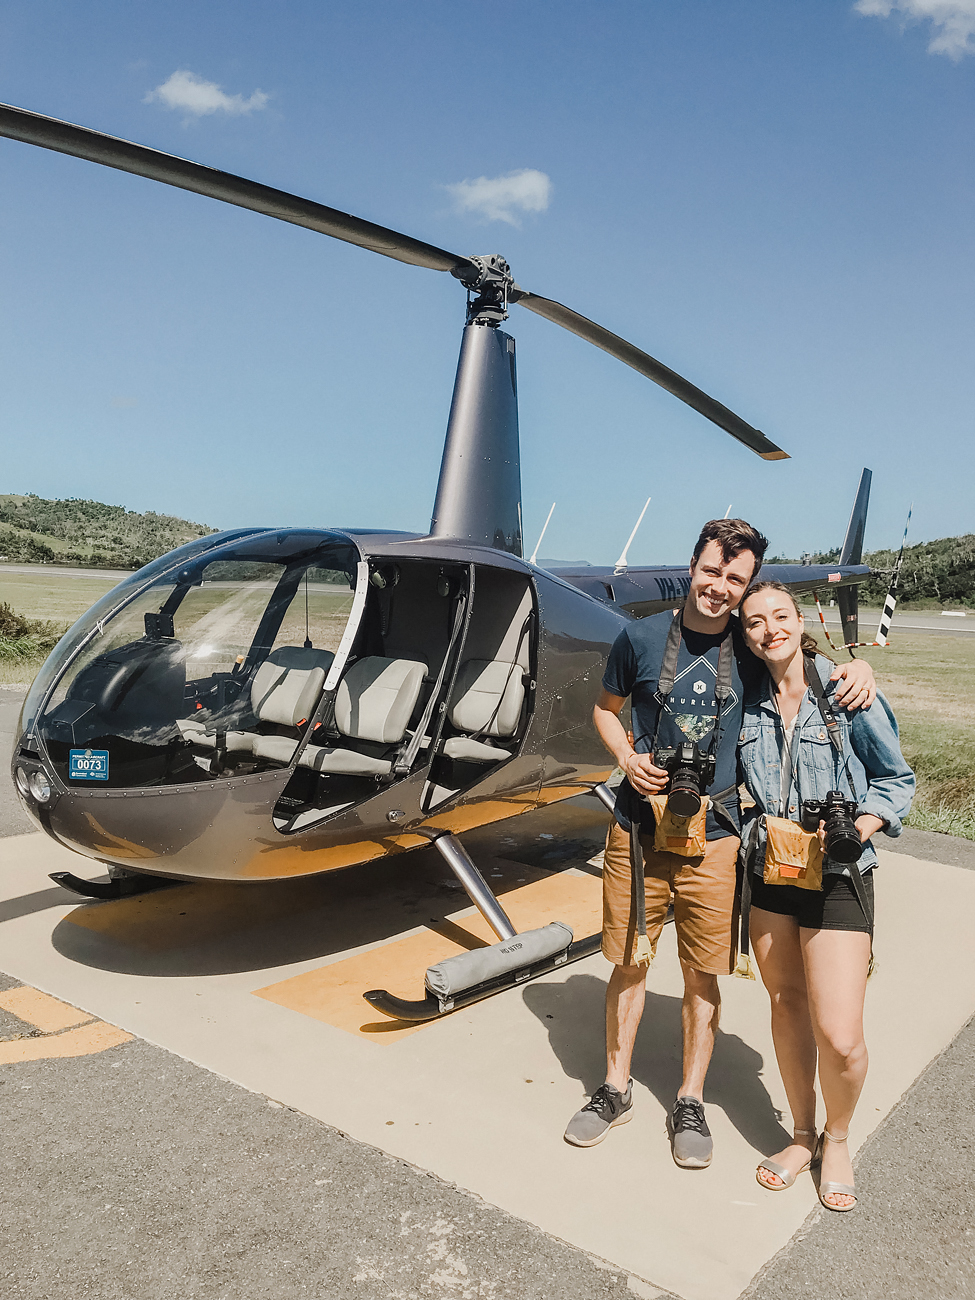 Flying in a doors off helicopter on our way to photograph the Great Barrier Reef. Thanks to Hamilton Island Air!